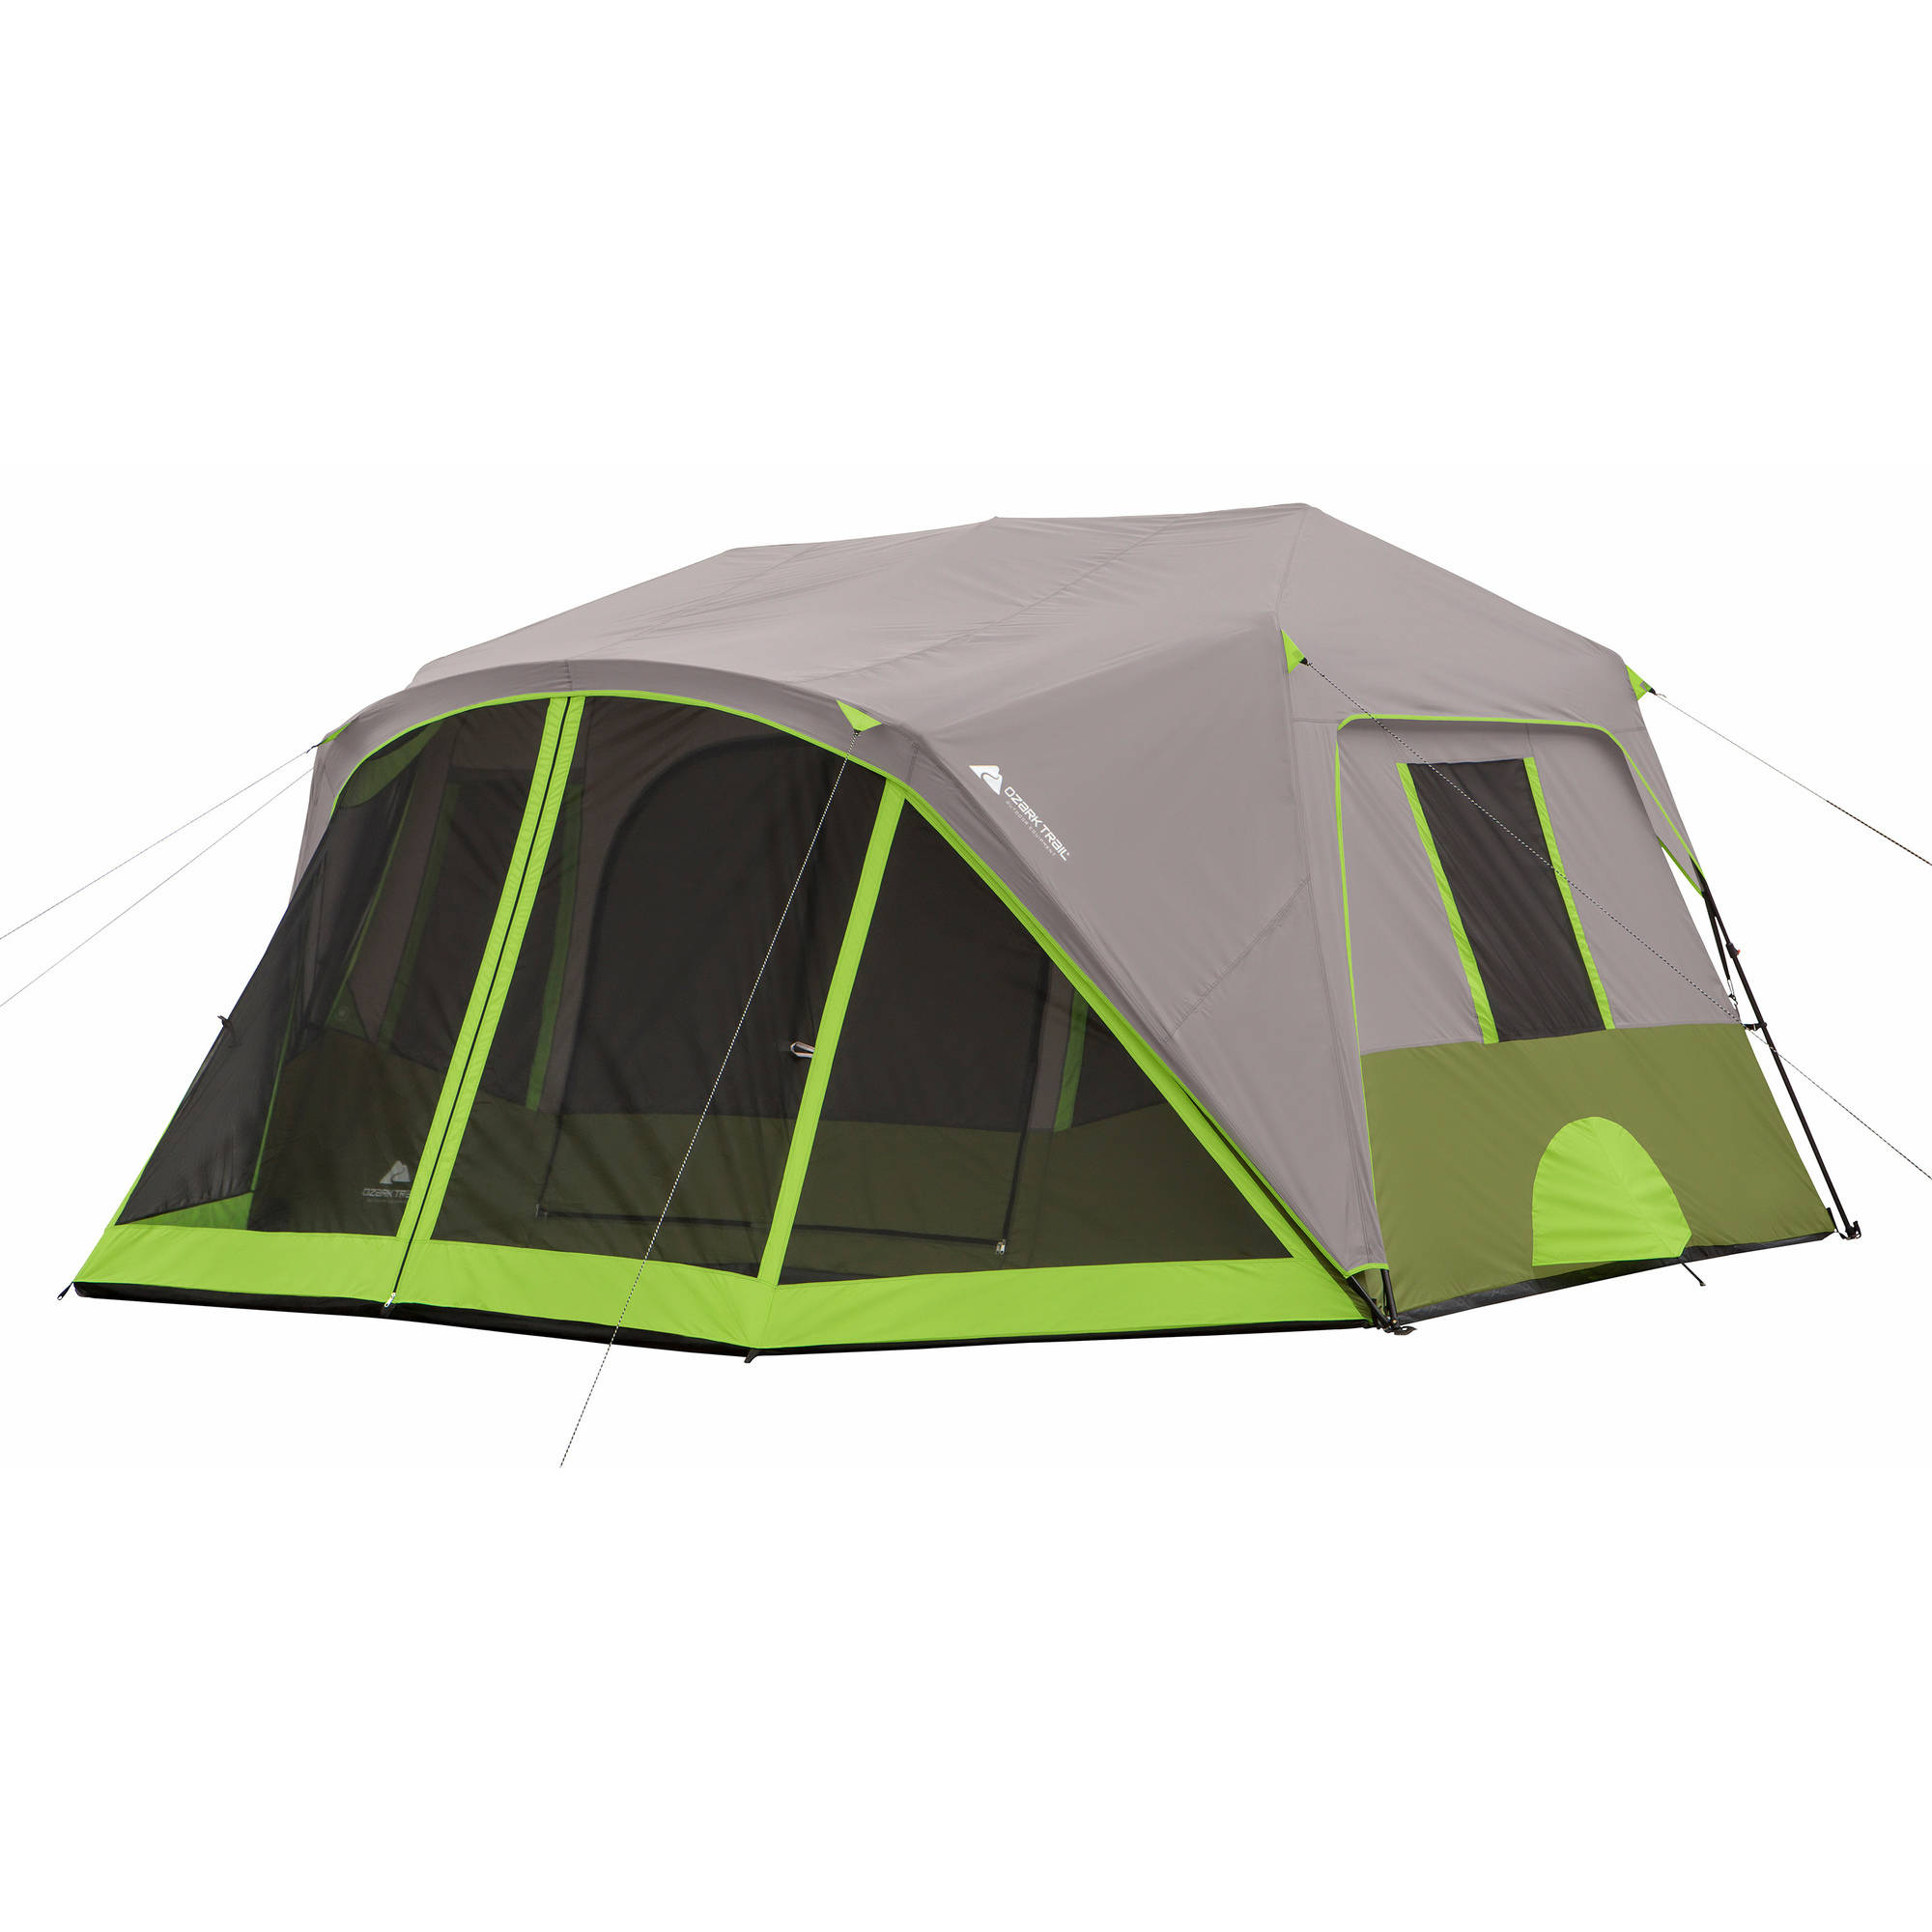 Ozark Trail 9 Person 2 Room Instant Cabin Tent with Screen Room  sc 1 st  Walmart & Ozark Trail 9-Person Instant Cabin Tent with 2 Bonus Queen Airbeds ...